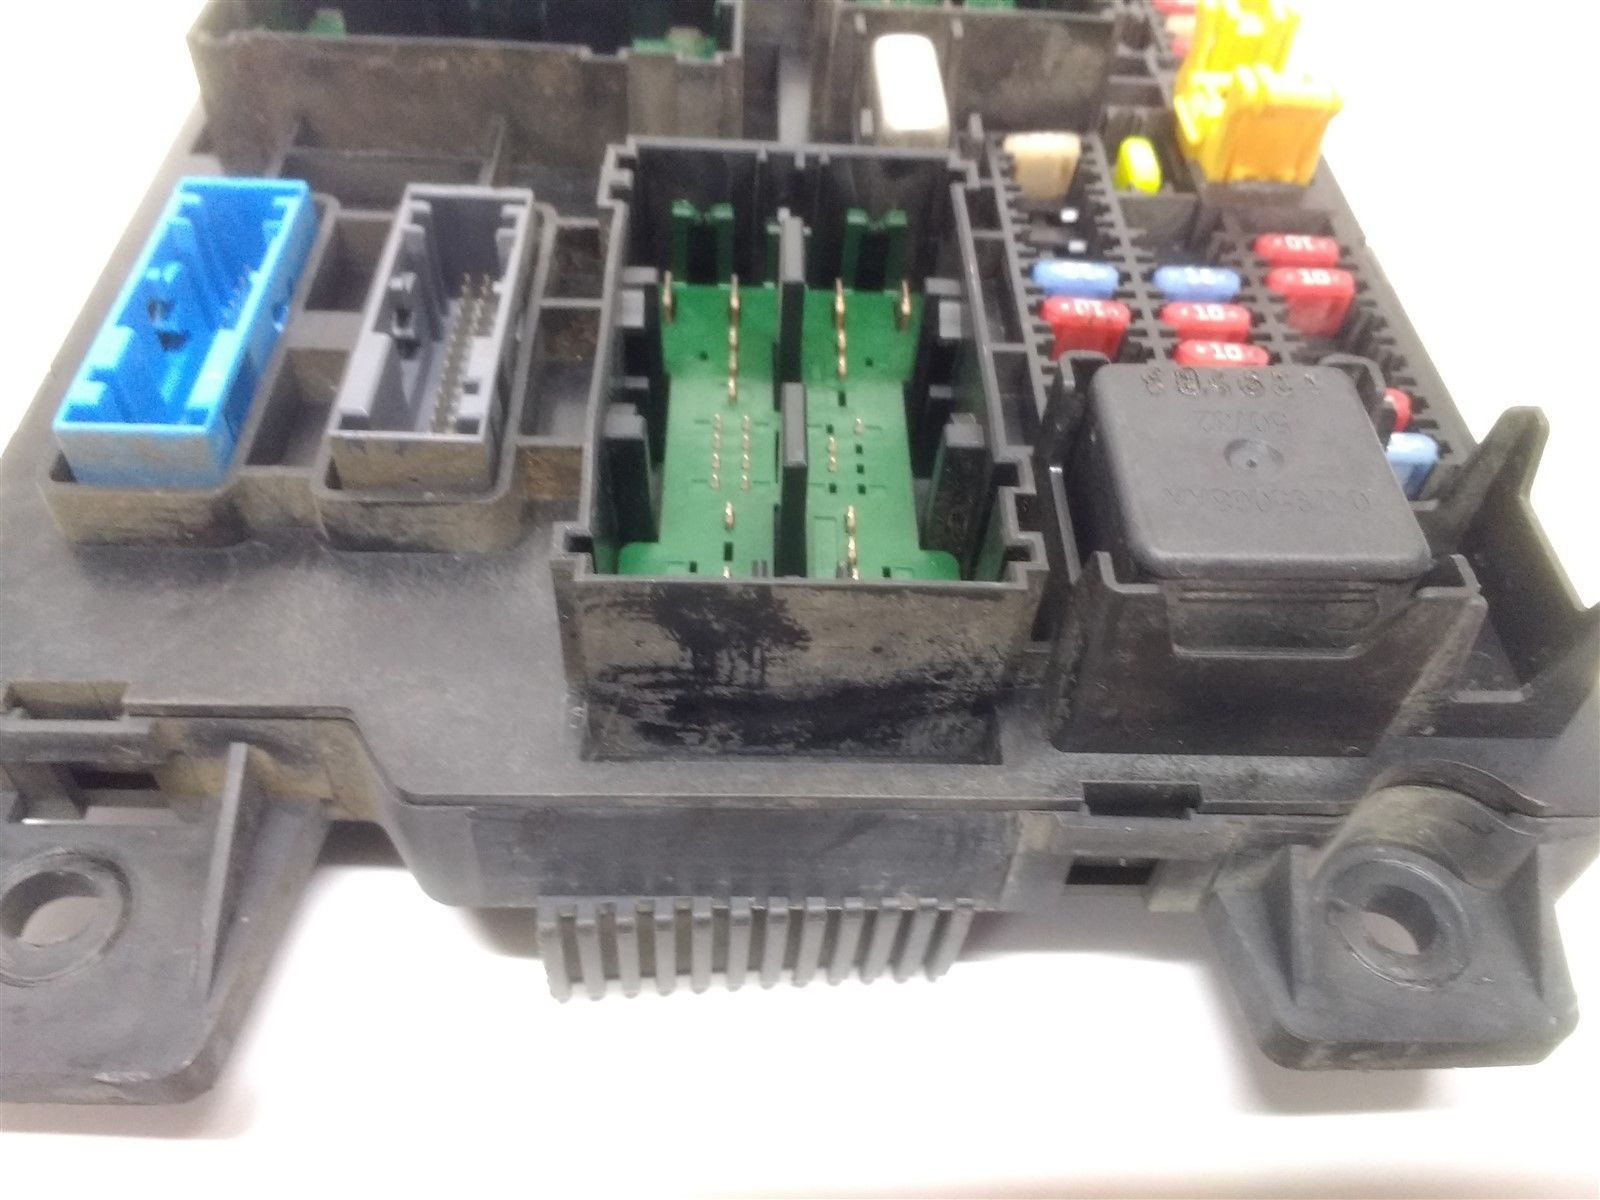 04 06 Dodge Durango Cabin Fuse Box Multifunction Relay Junction Oem 56049173af Does Not Apply